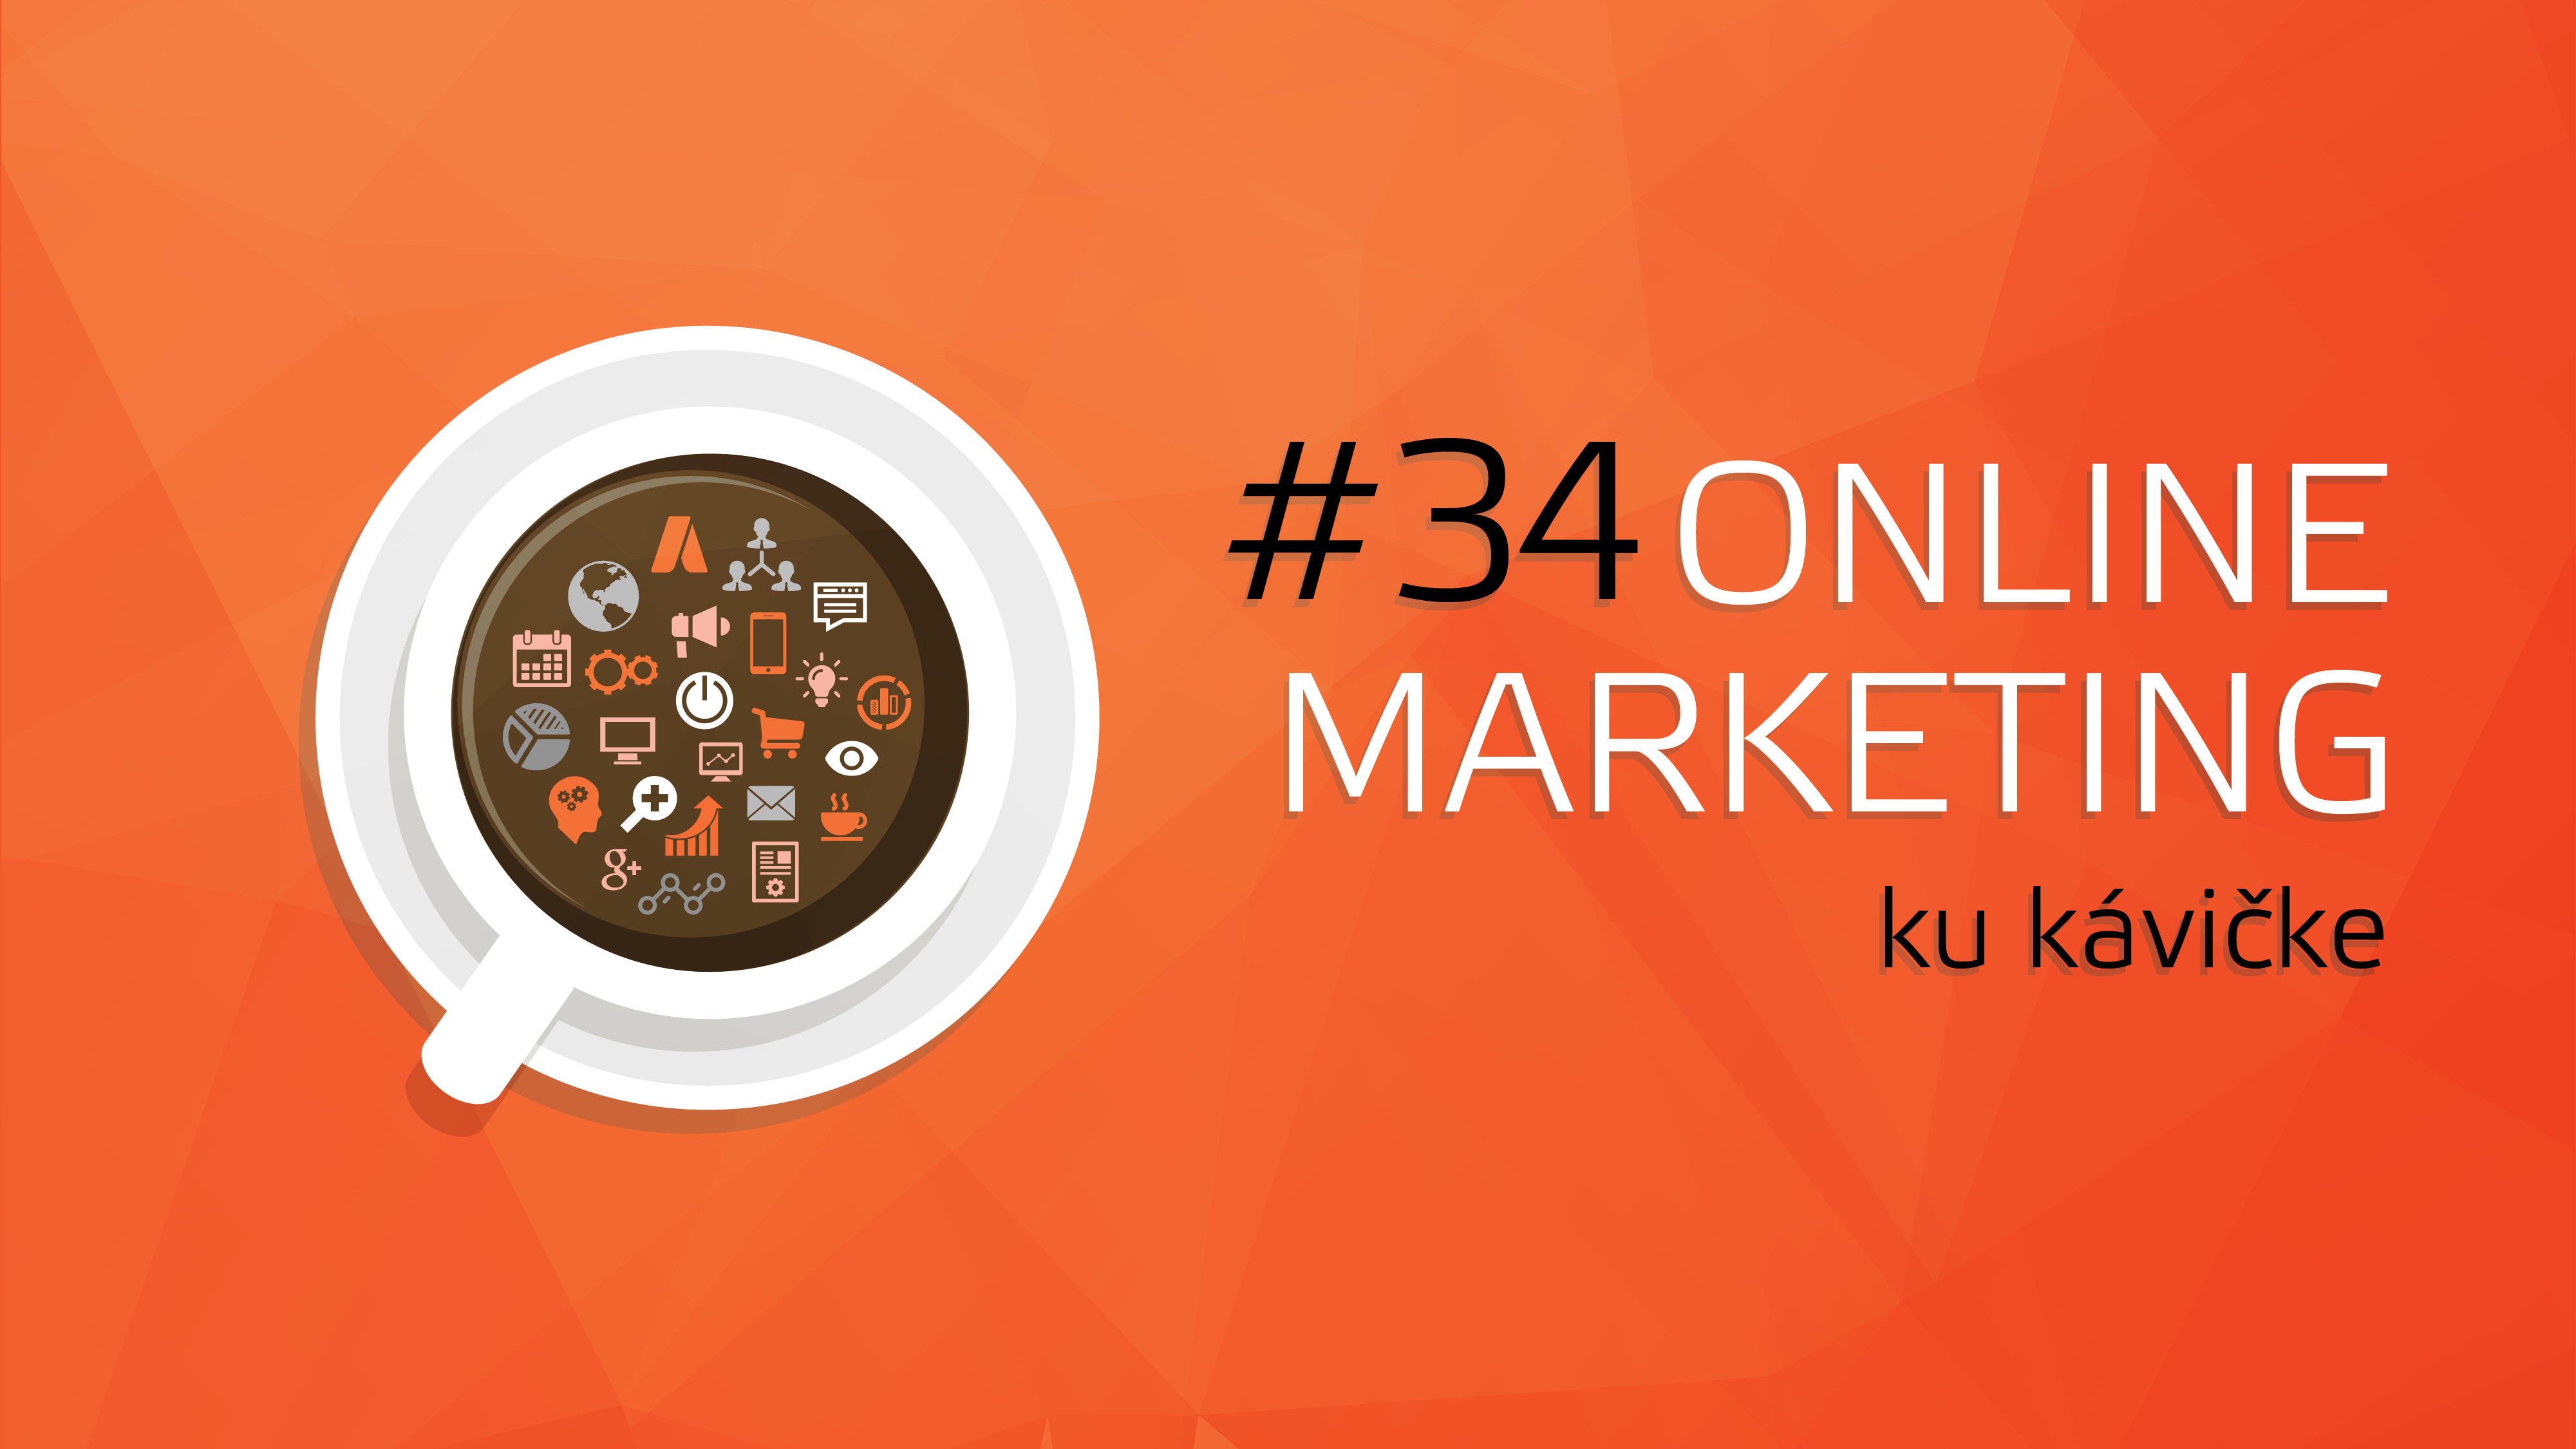 ONLINE MARKETING KU KAVICKE 34